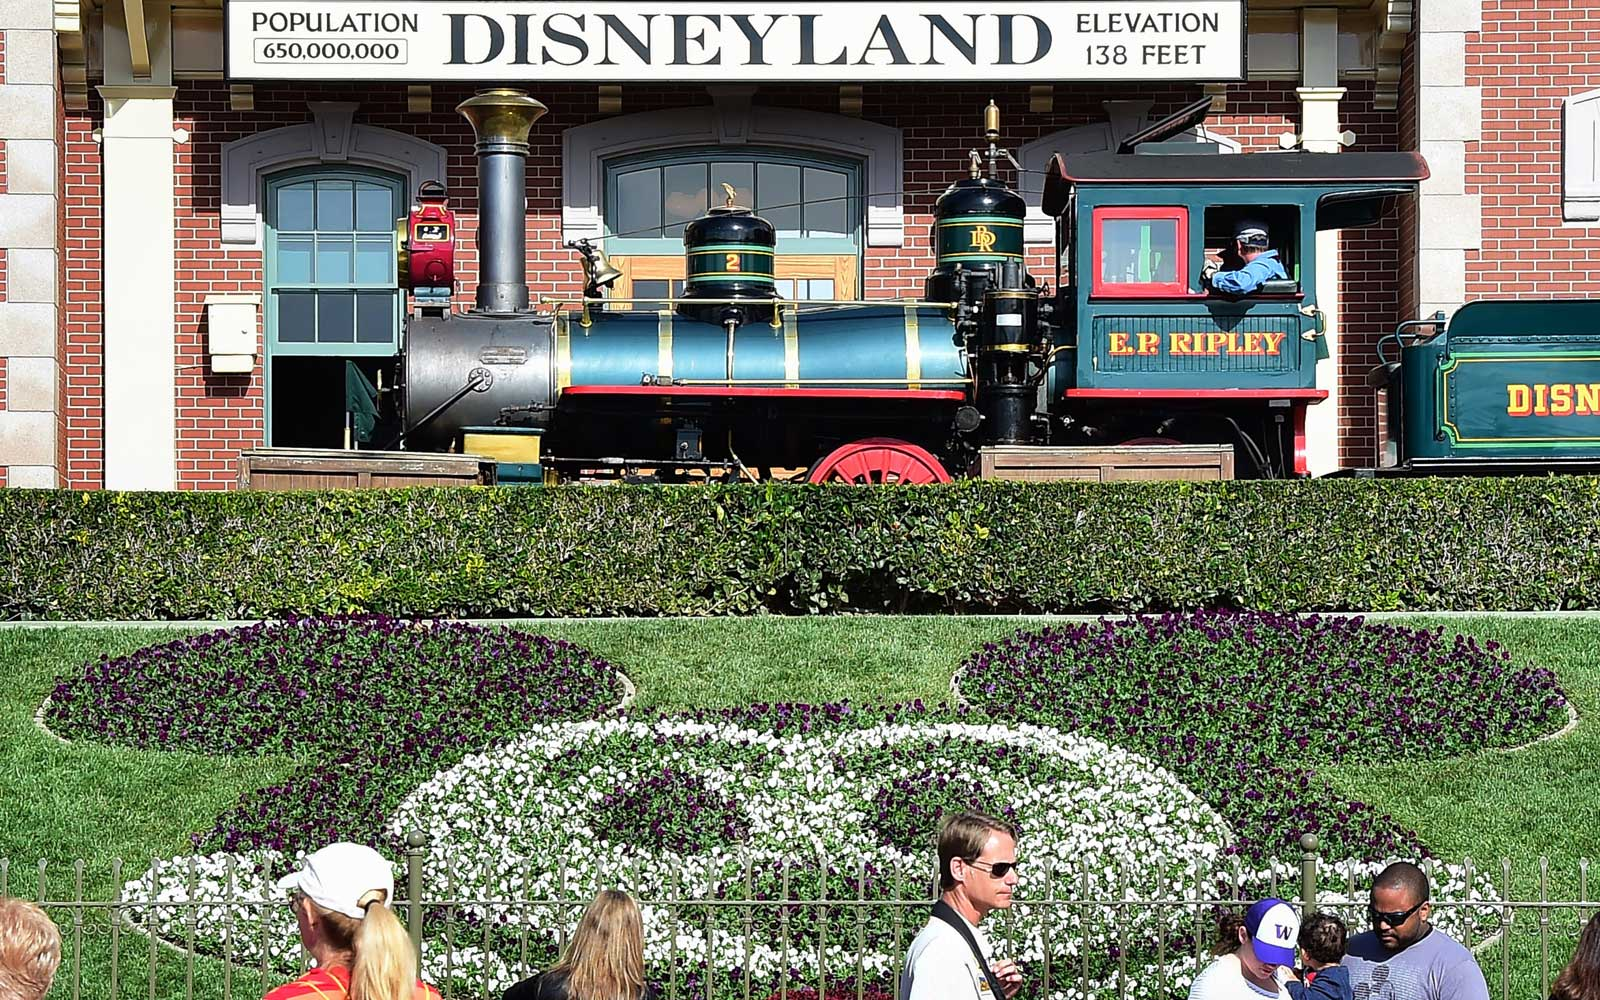 Disneyland Is Hiring, and Holding Two Job Fairs in May